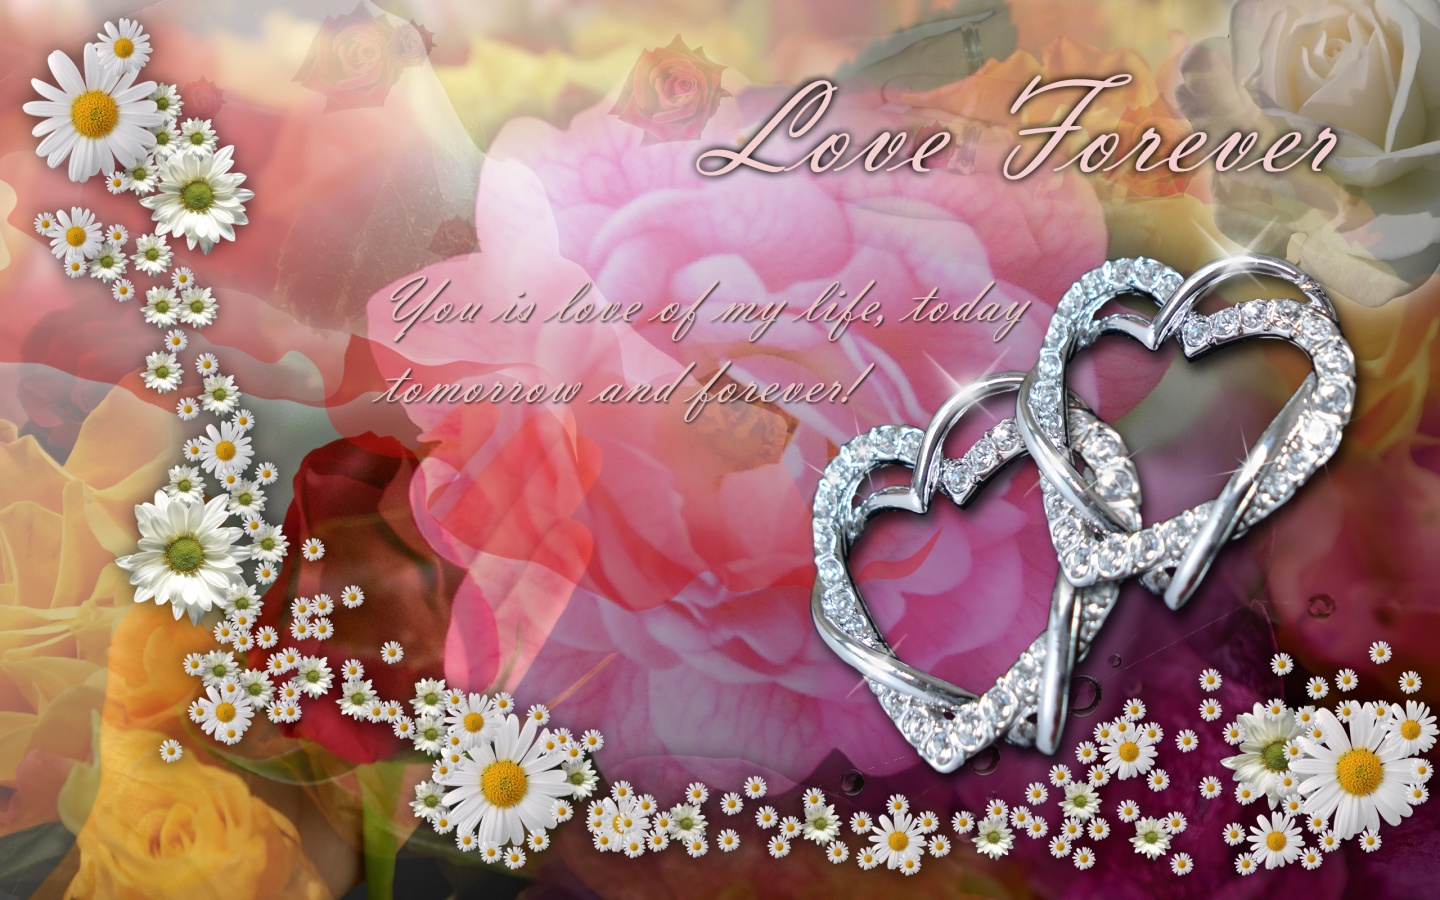 Love Forever Wallpapers : 1440x900 Love Forever desktop Pc and Mac wallpaper